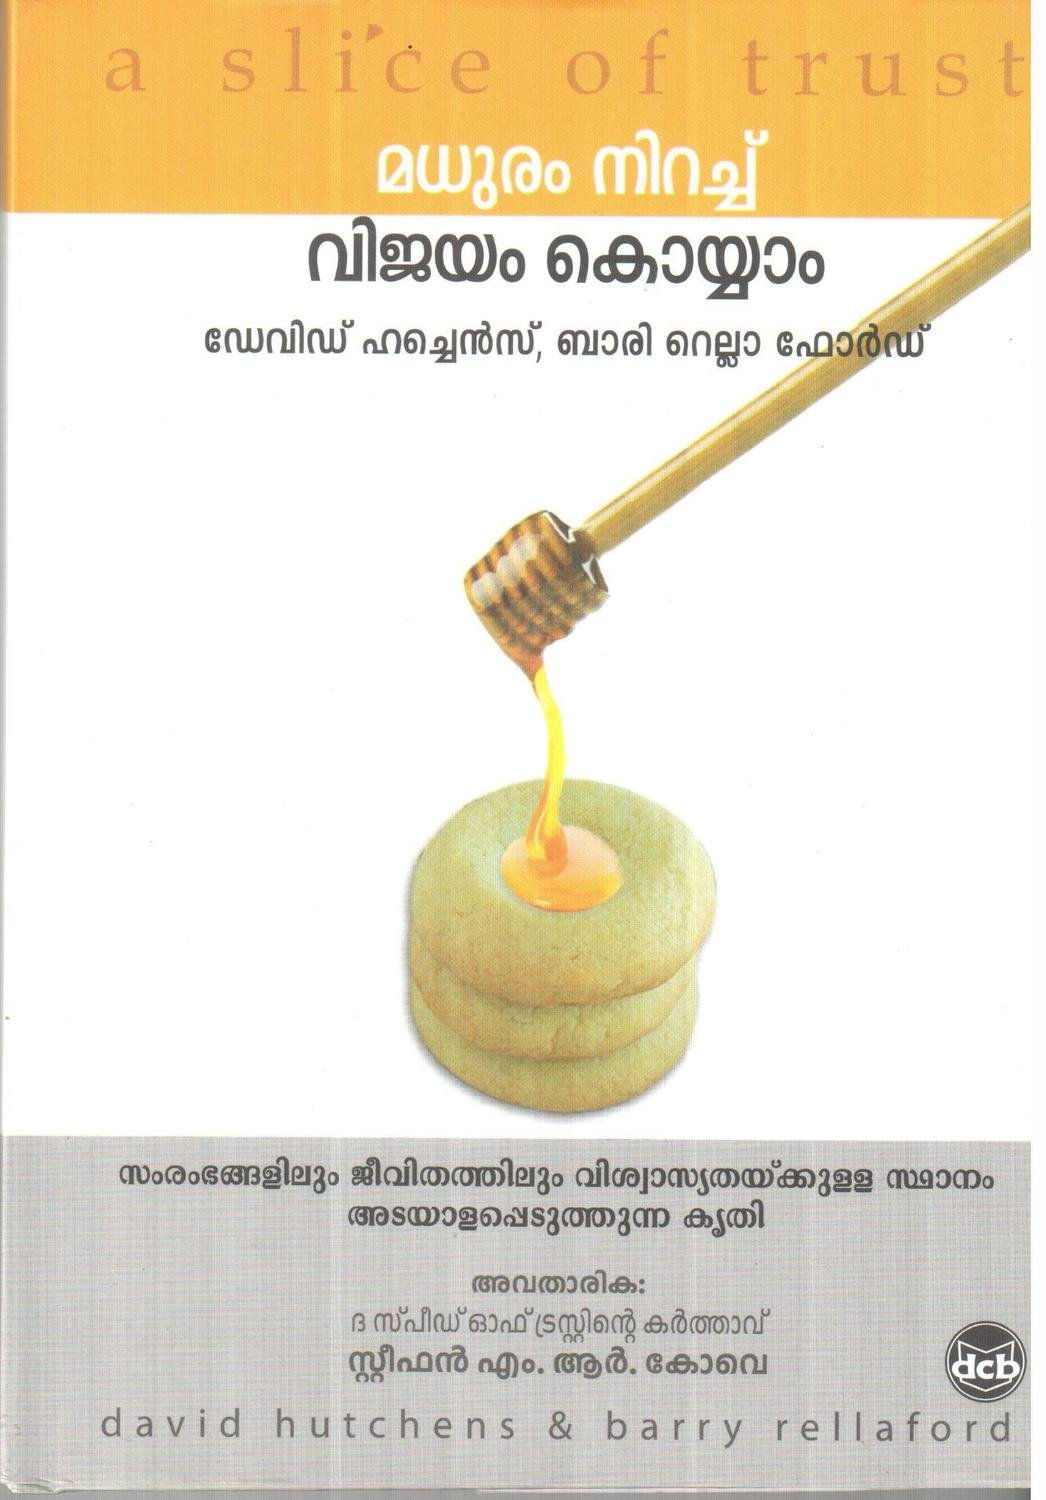 മധുരം നിറച്ച് വിജയം കൊയ്യാം | Madhuram Nirachu Vijayam Koyyam ( A Slice of Trust) by David Hutchens & Barry Rellaford